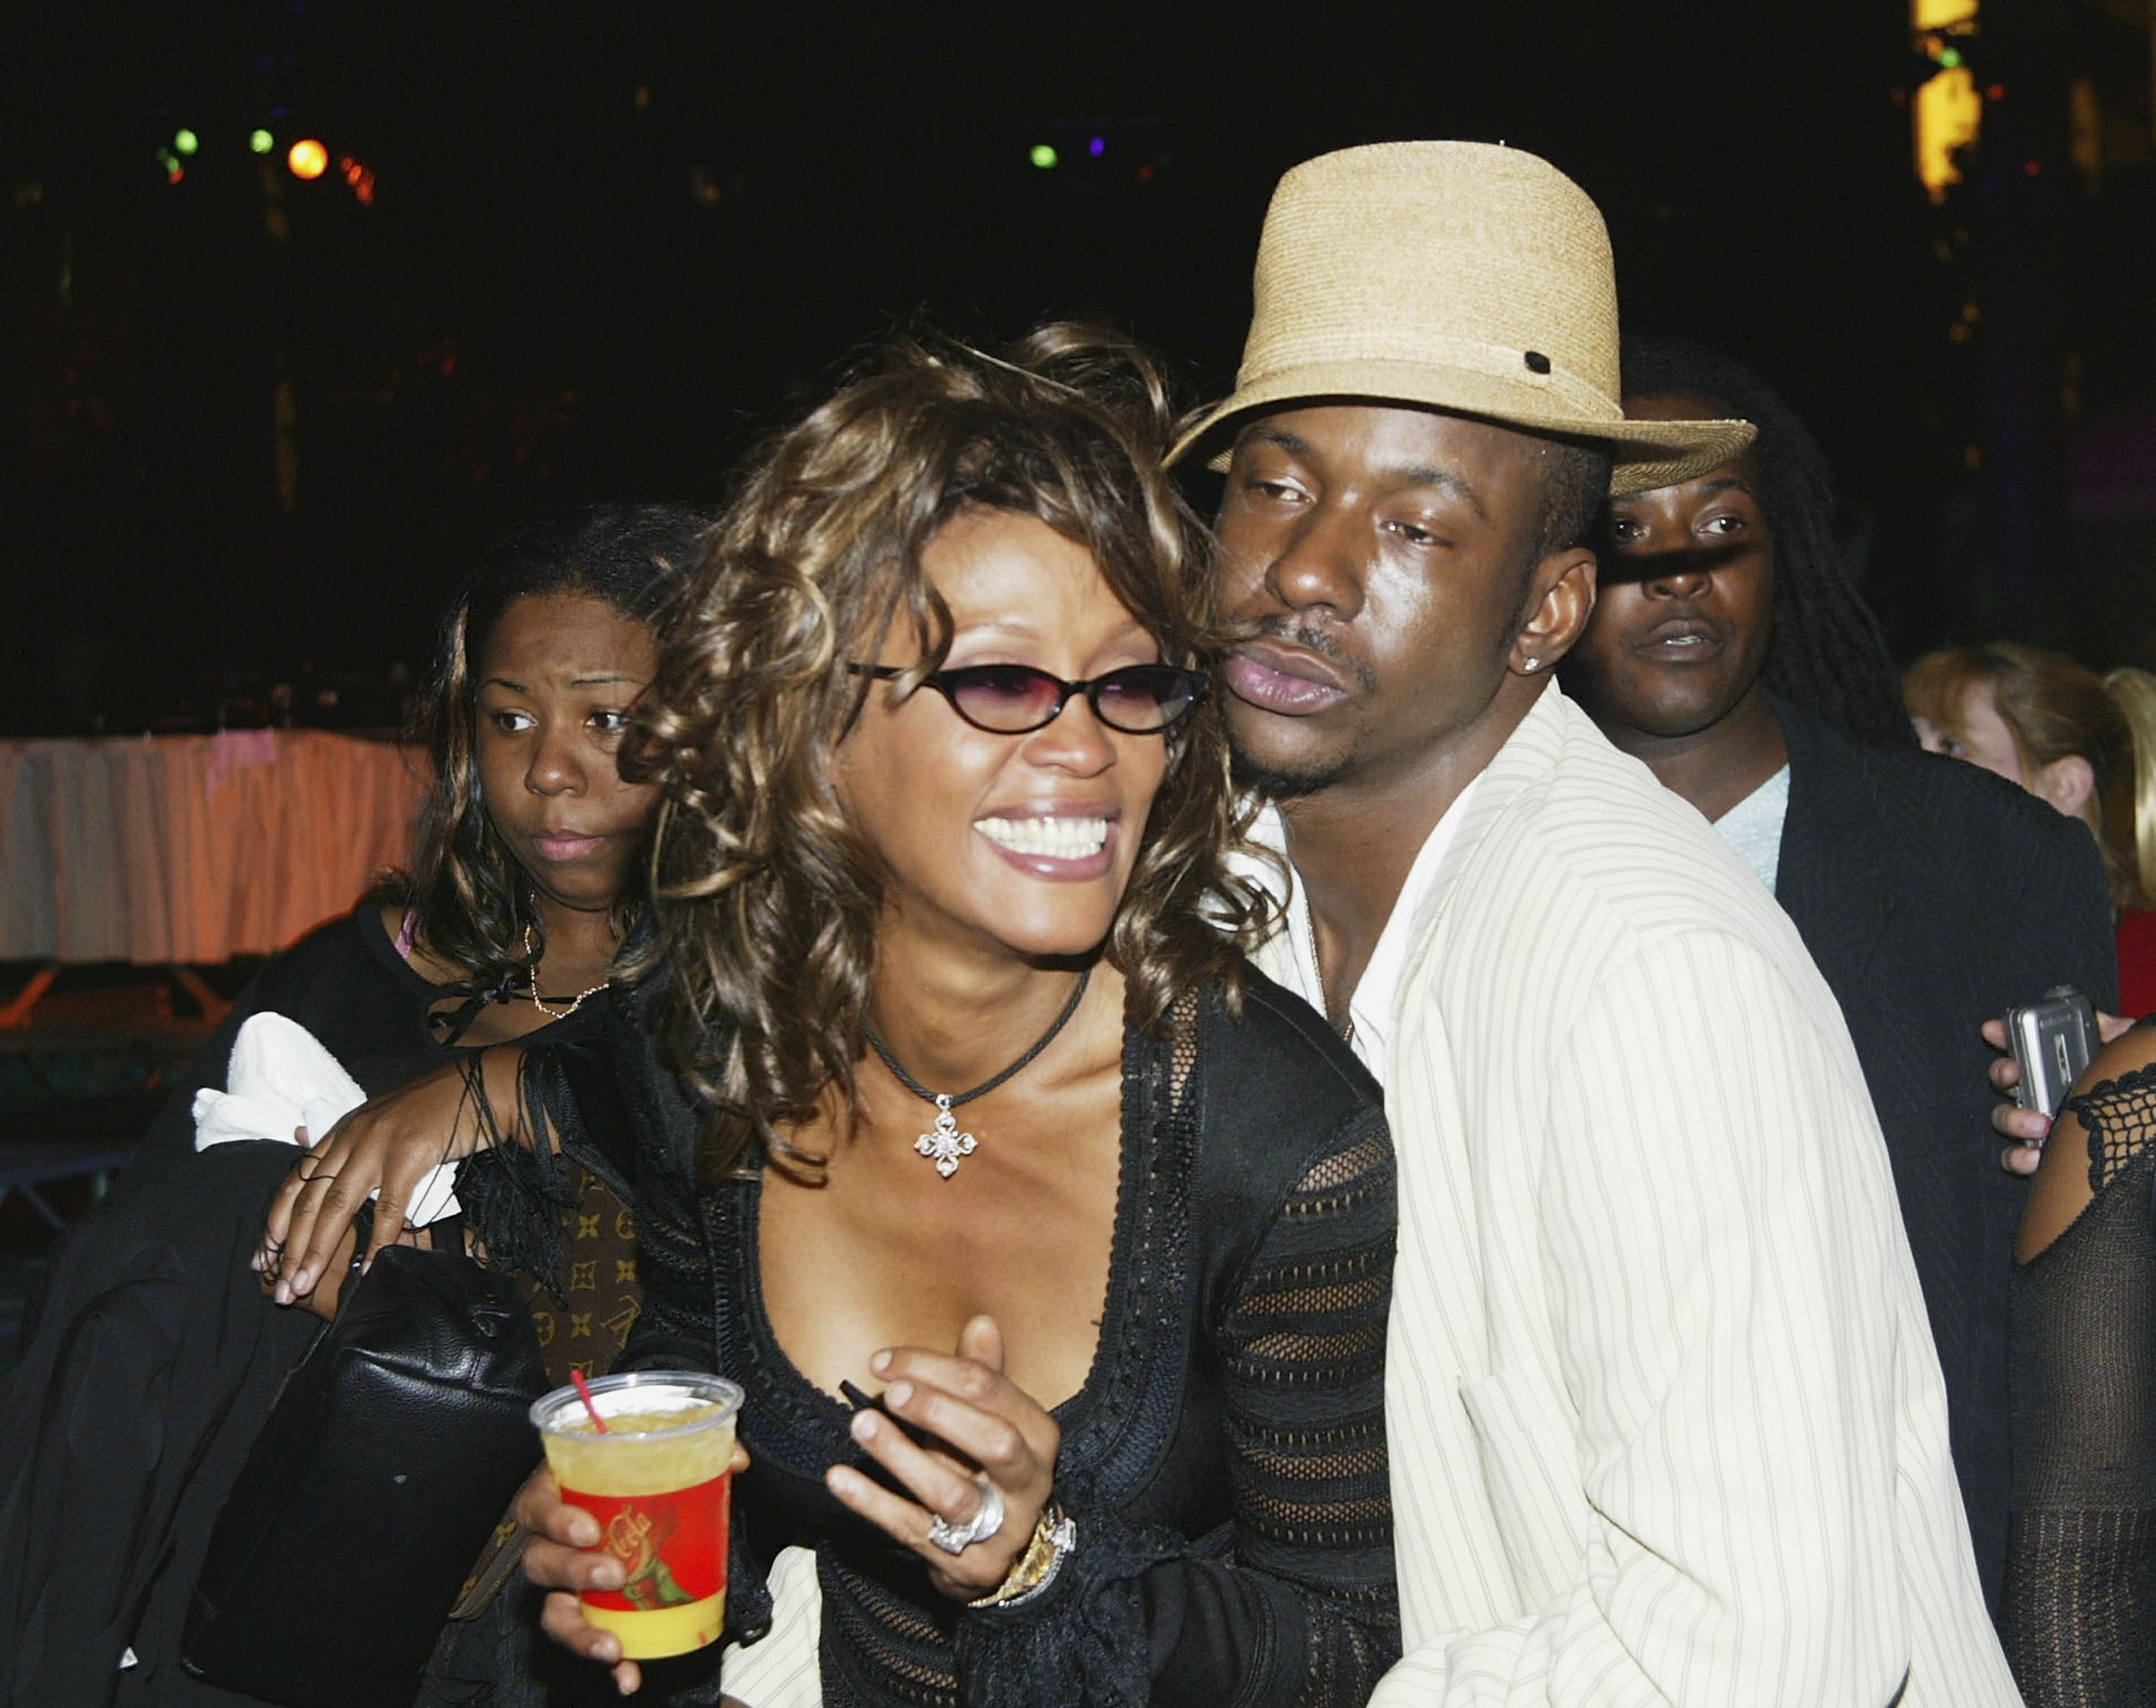 LAS VEGAS - MAY 22: Singers Whitney Houston and husband Bobby Brown attend the VH1 Divas Duets post concert party to benefit the VH1 Save the Music Foundation held at the MGM Grand Garden Arena on May 22, 2003 in Las Vegas, Nevada. (Photo by Frazer Harrison/Getty Images)